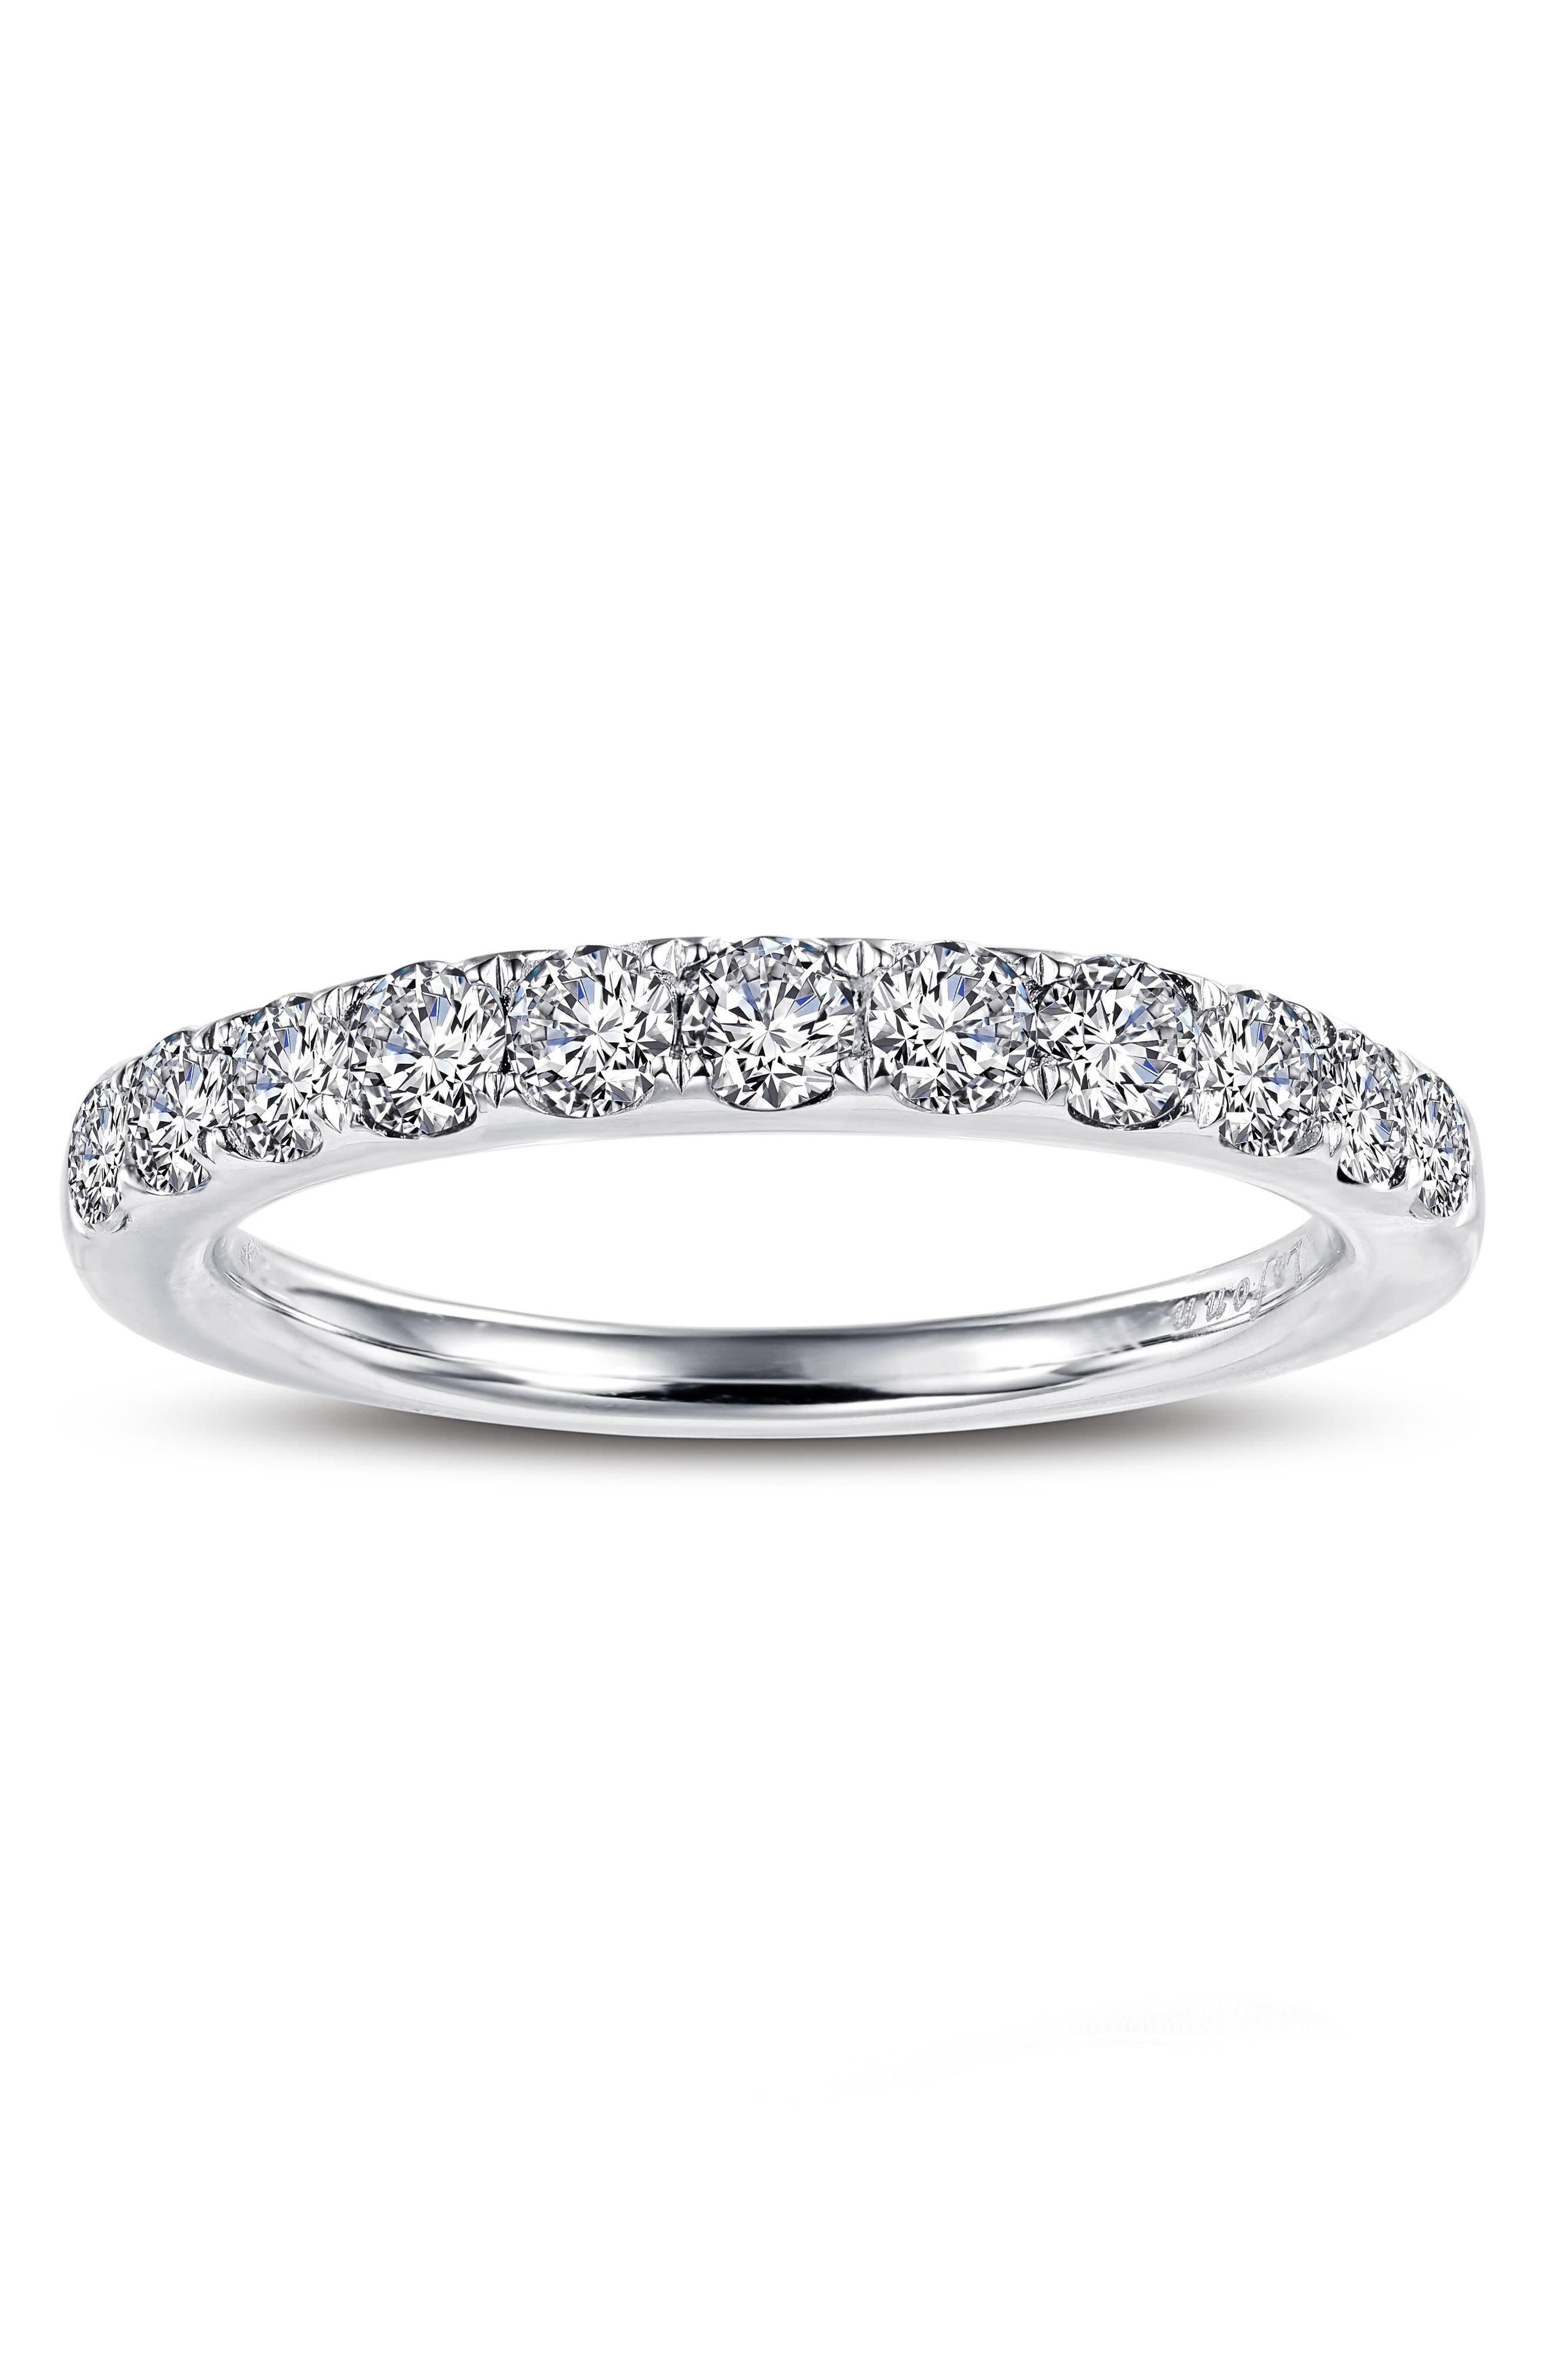 Simulated Diamond Birthstone Band Ring,                             Alternate thumbnail 2, color,                             APRIL - CLEAR/ SILVER